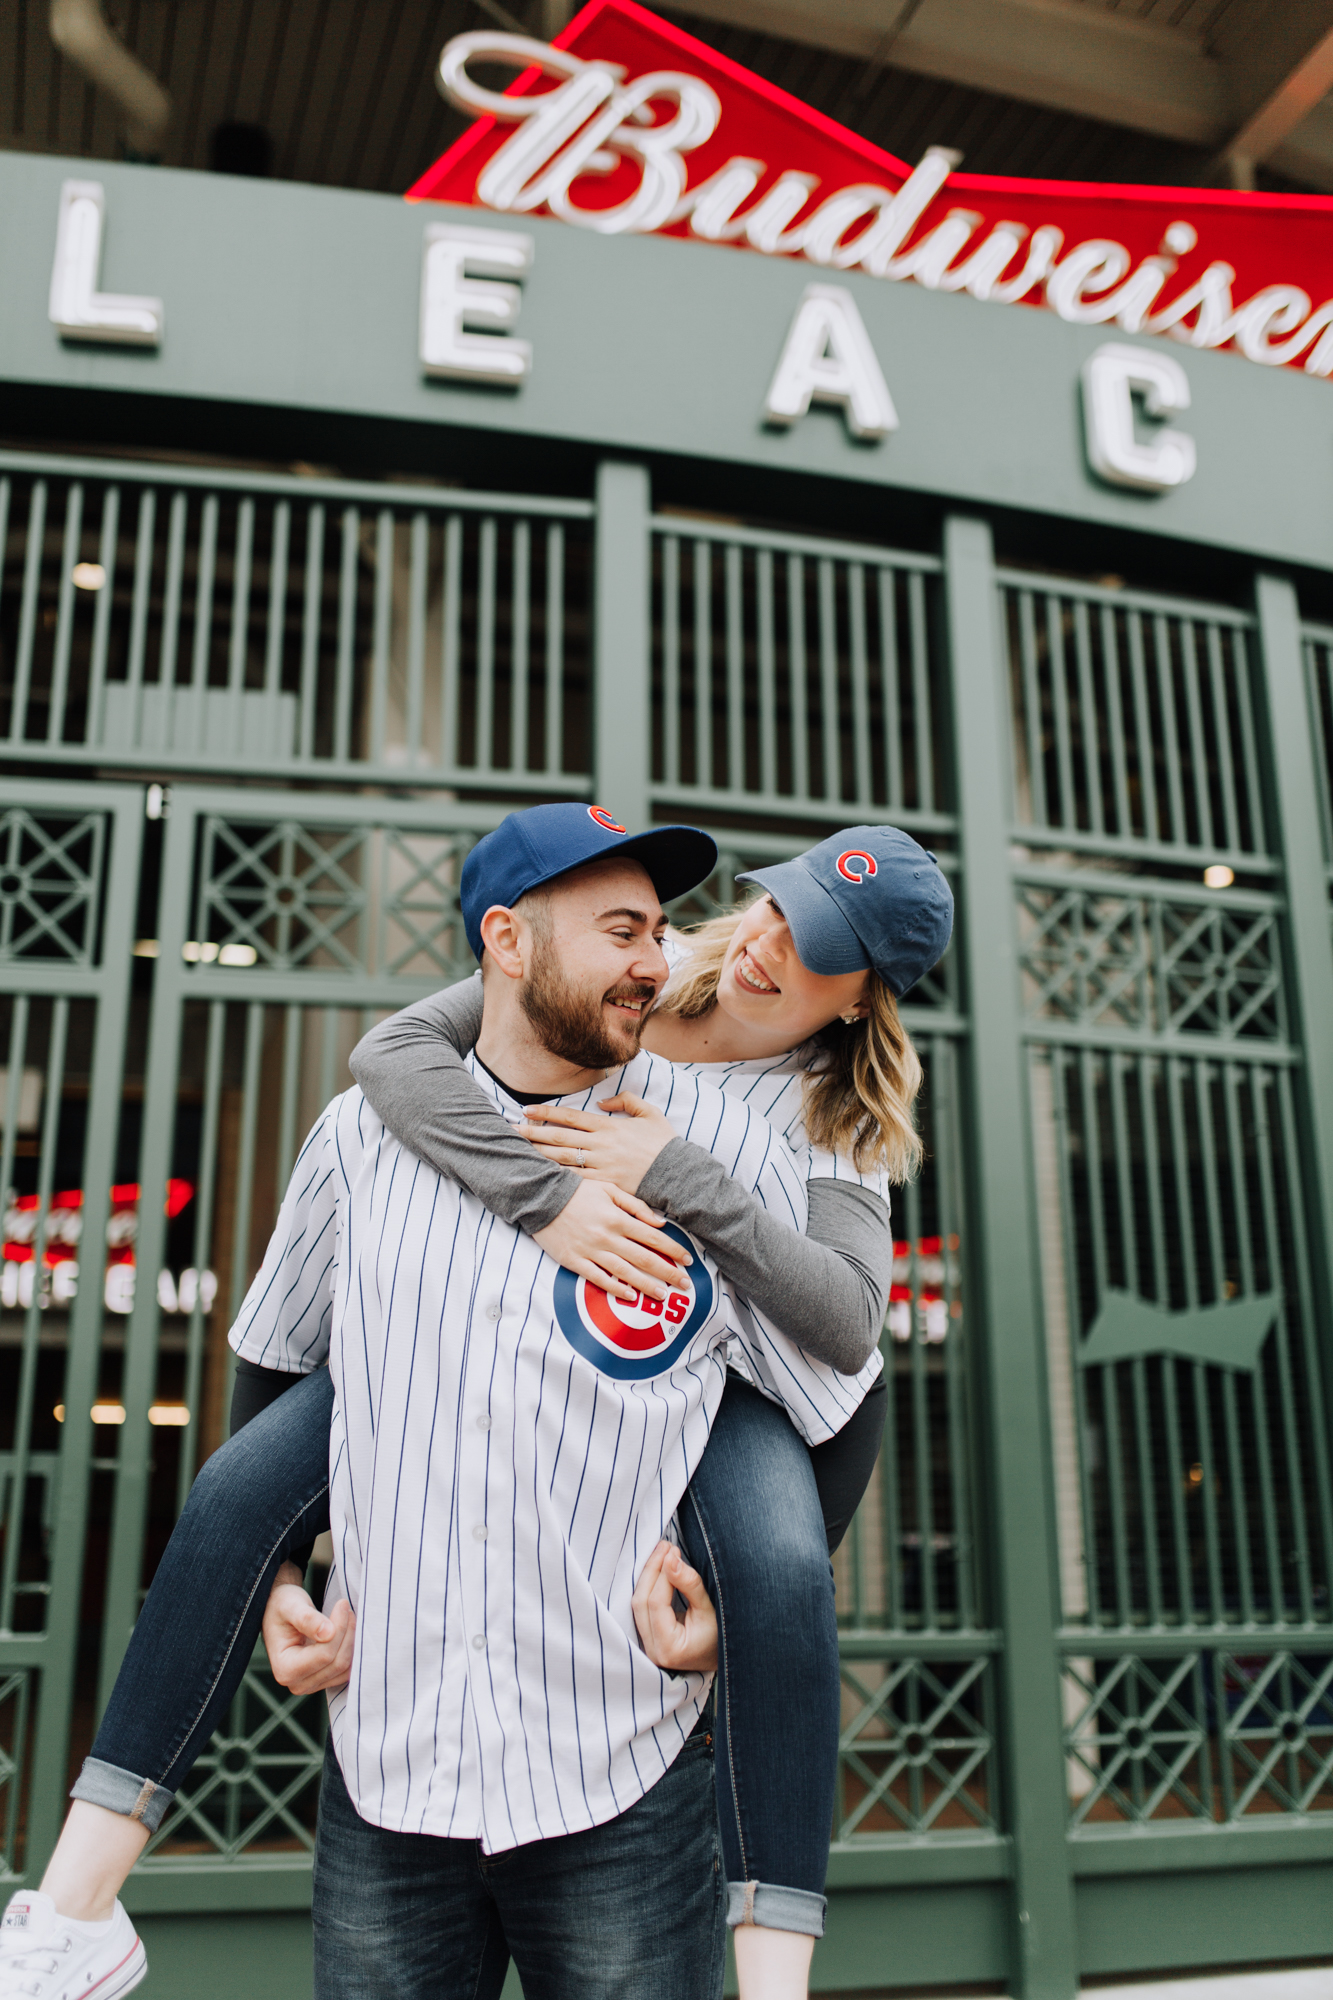 ashlee_oneil_photography_engagement_session_chicago.jpg